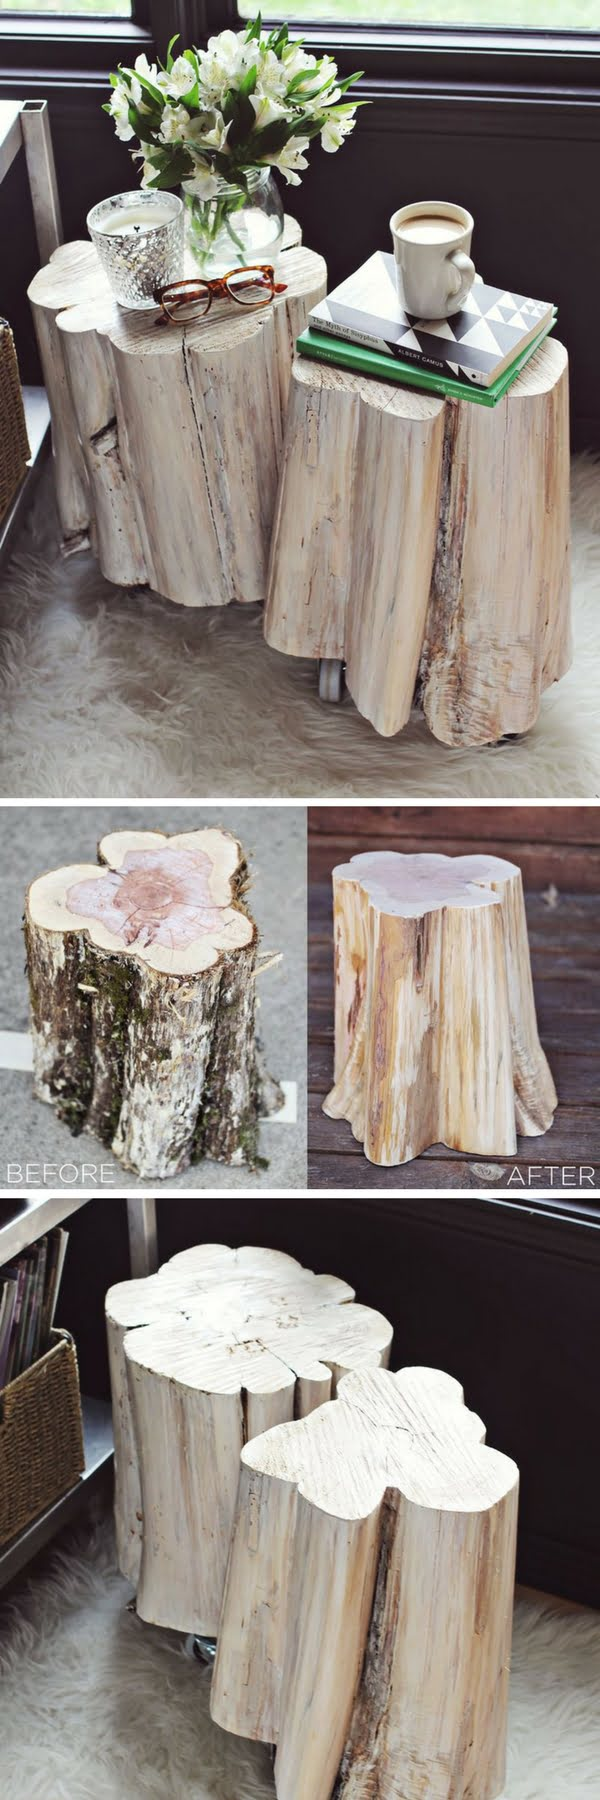 How to make DIY tree stump side tables